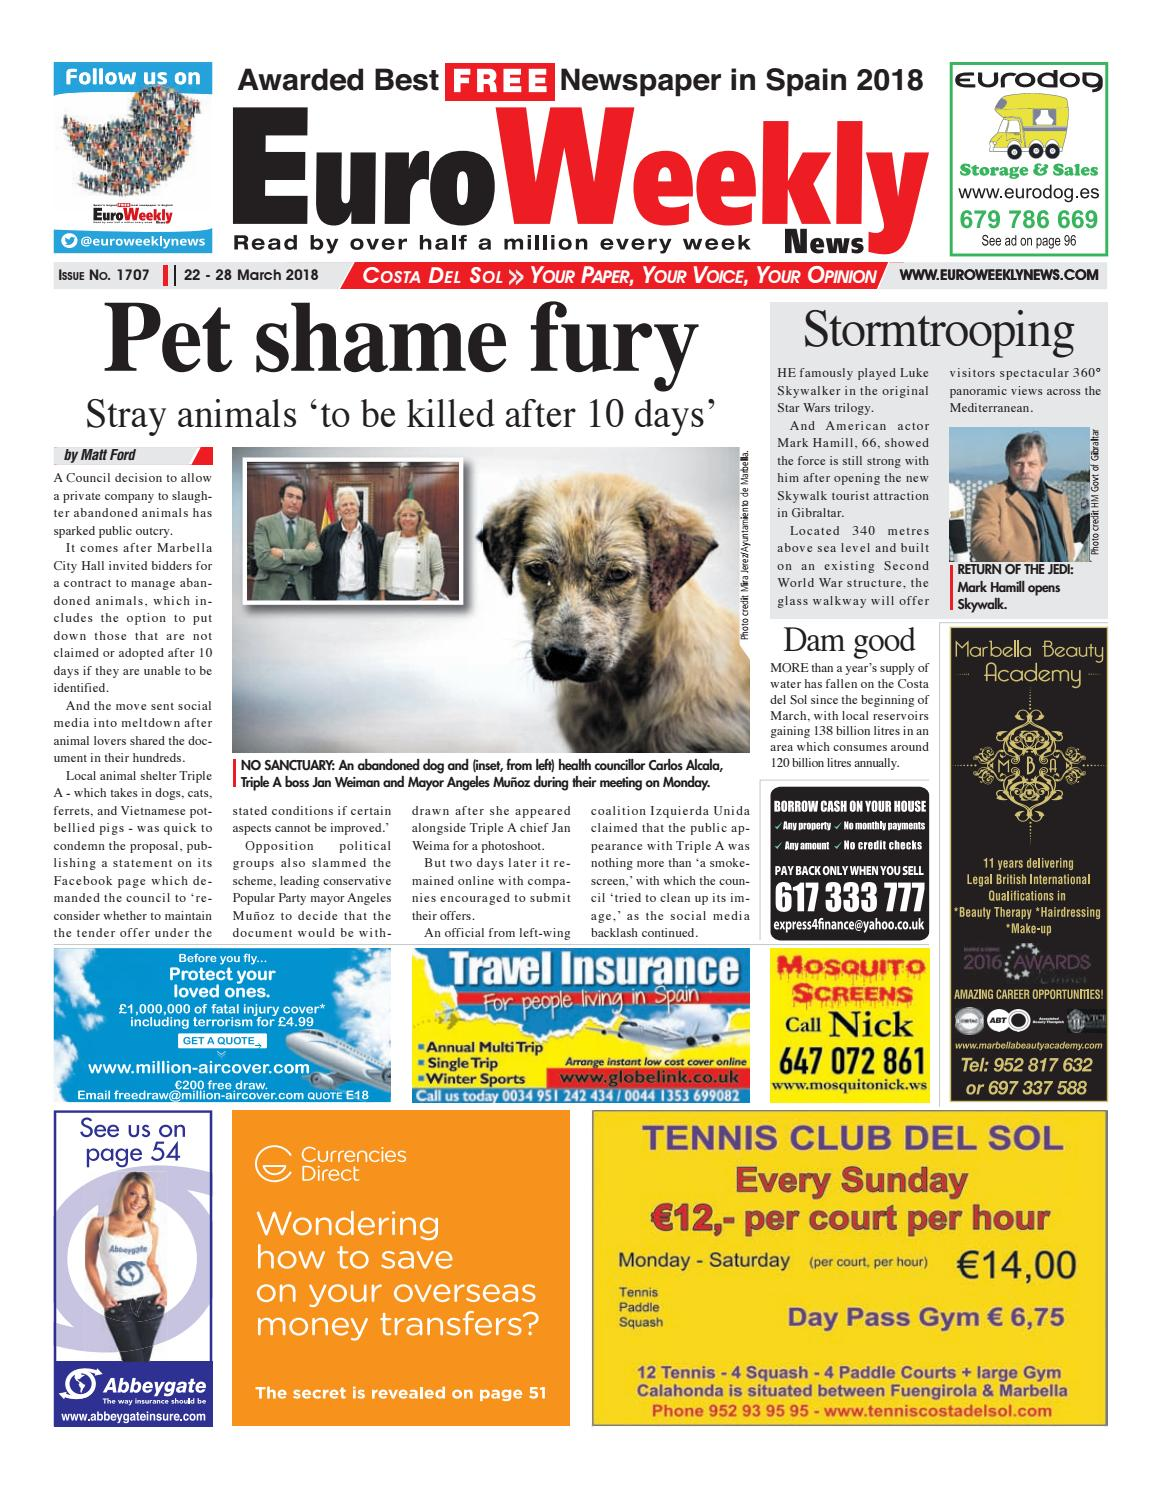 Euro Weekly News - Costa del Sol 22 - 28 March 2018 Issue 1707 by ...